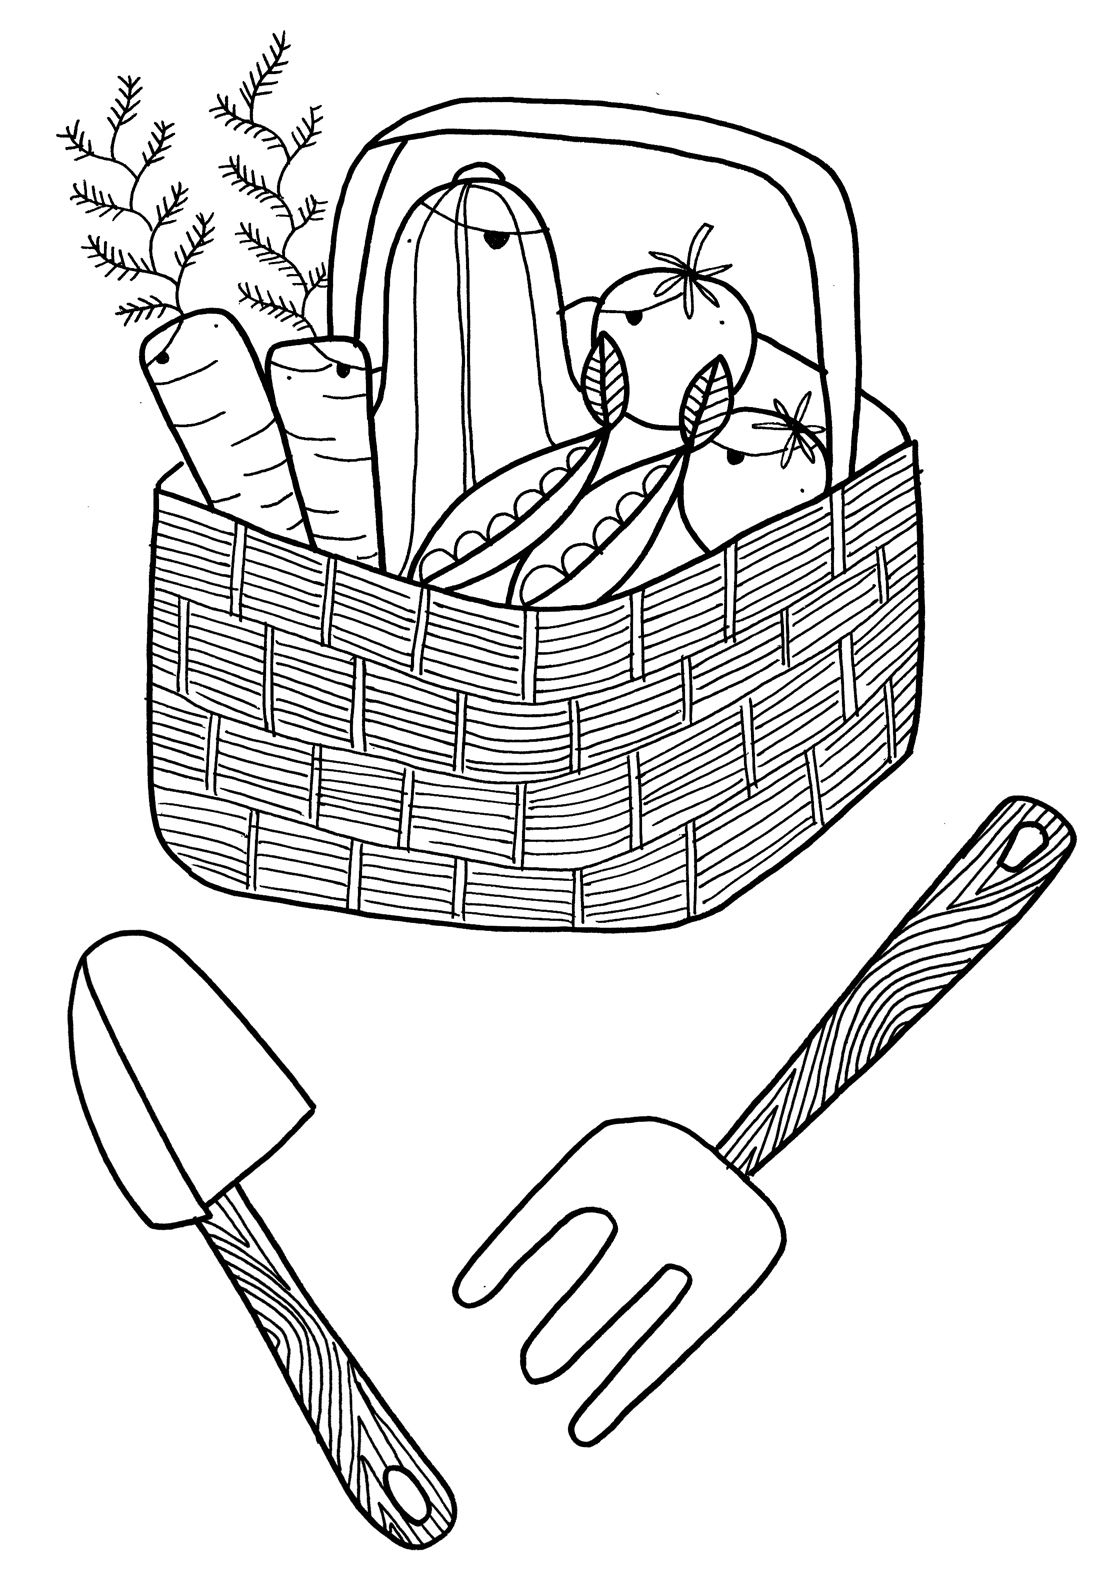 Gardening Coloring Page For Kids Garden Coloring Pages